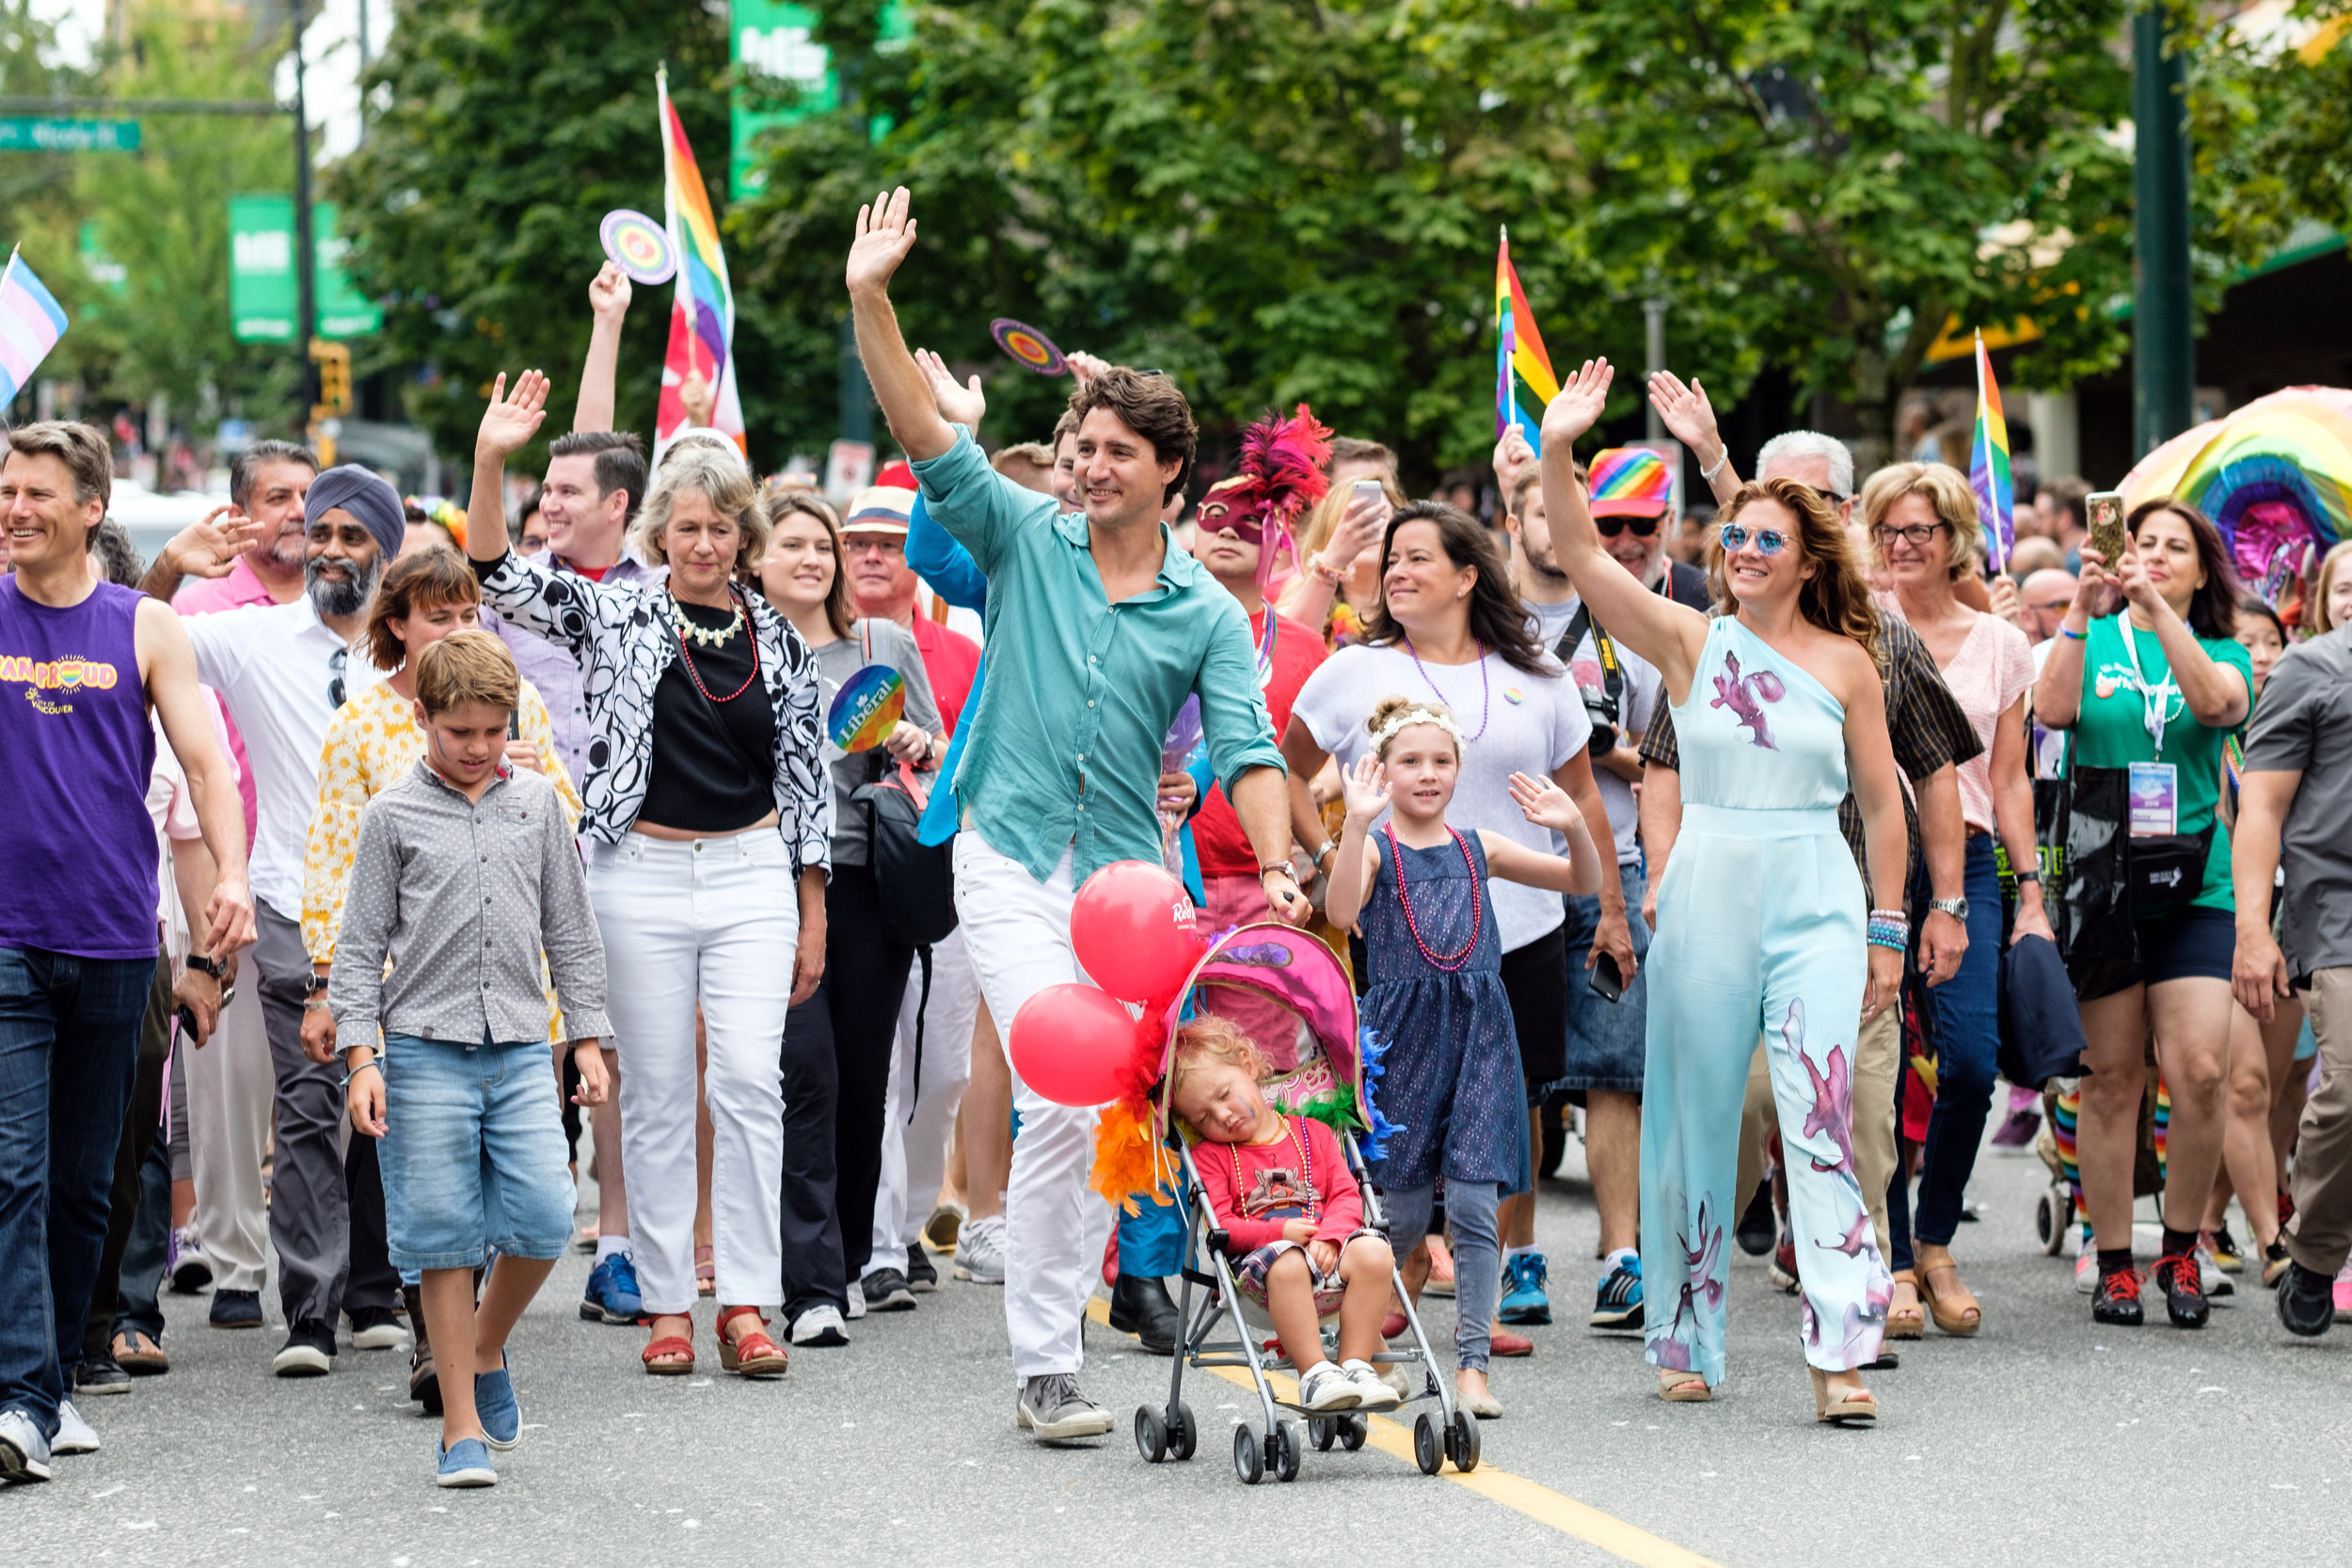 A great moment in Vancouver, Canada as Prime Minister Justin Trudeau and family marched for LGBTQ rights at the Pride Parade.